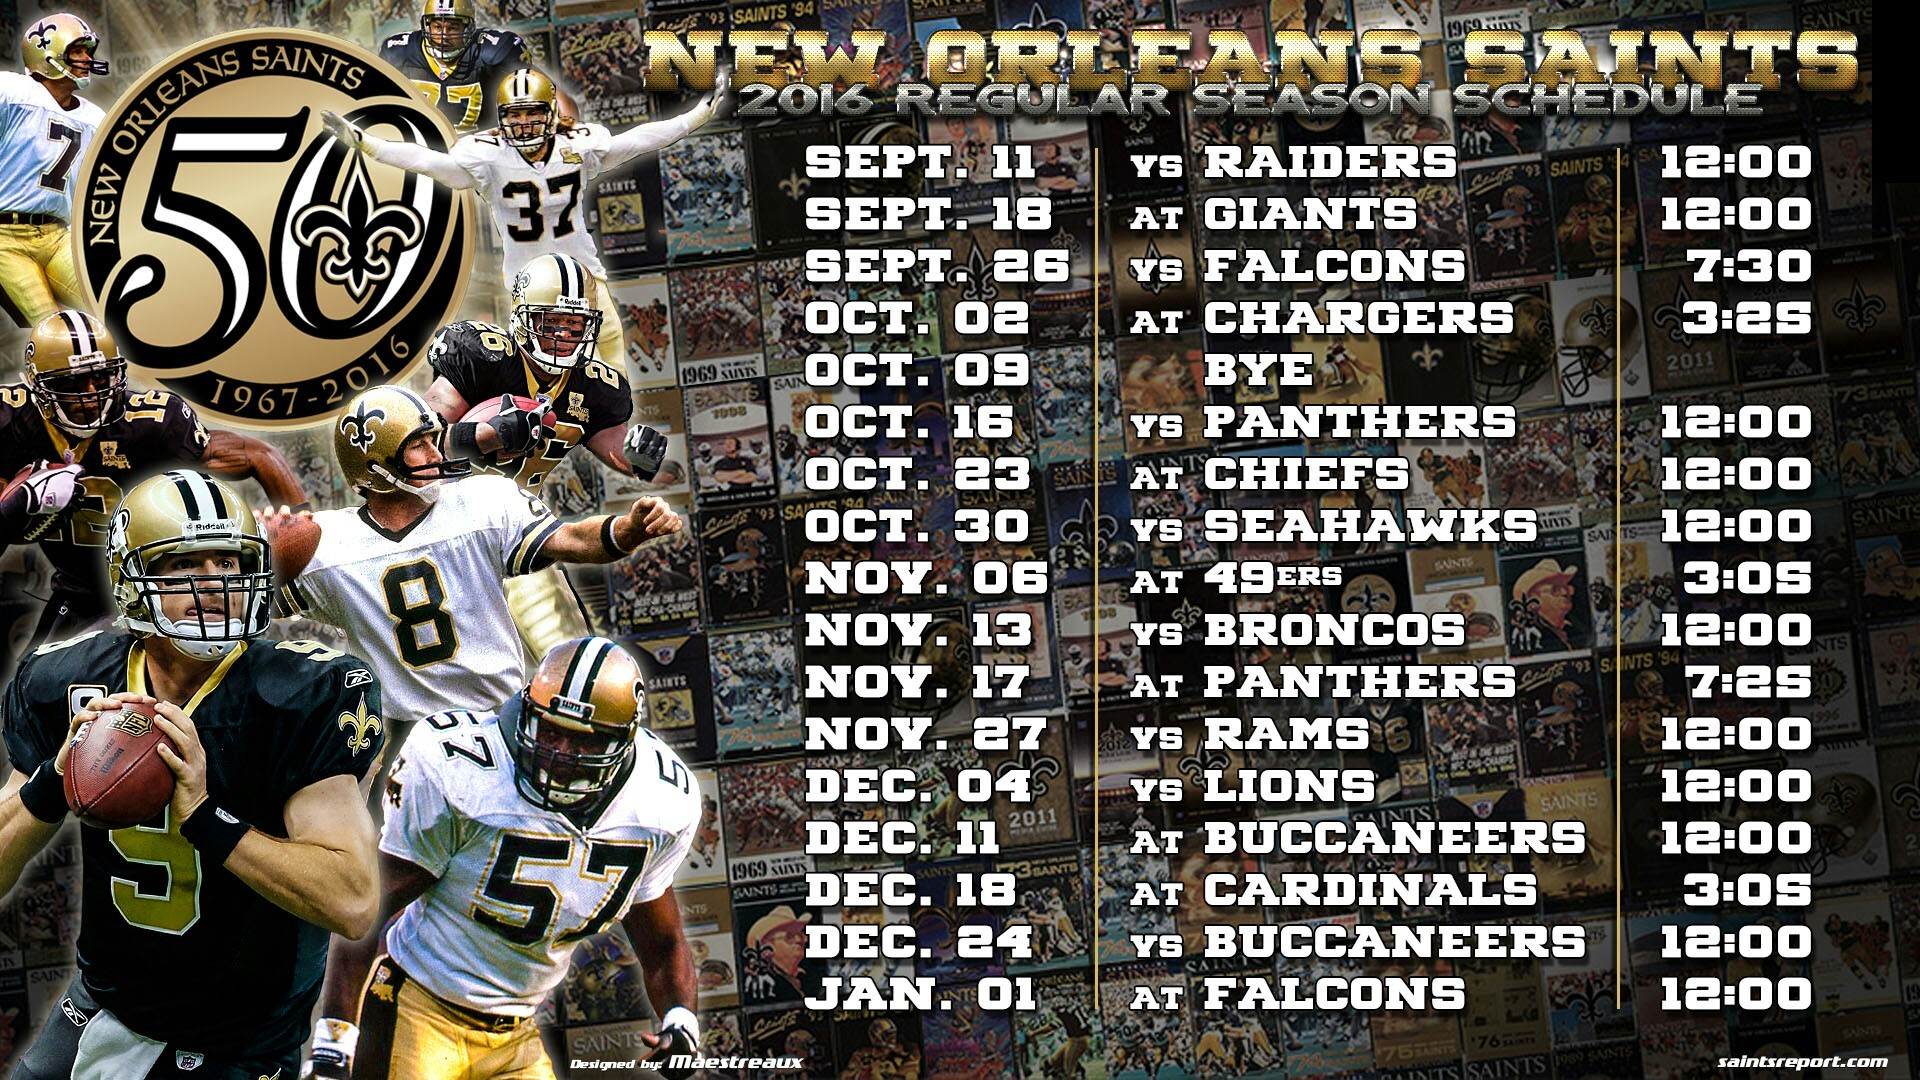 1920x1080 2016 new orleans saints schedule wallpaper · Download · 2560x1440 Detroit Lions Wallpaper